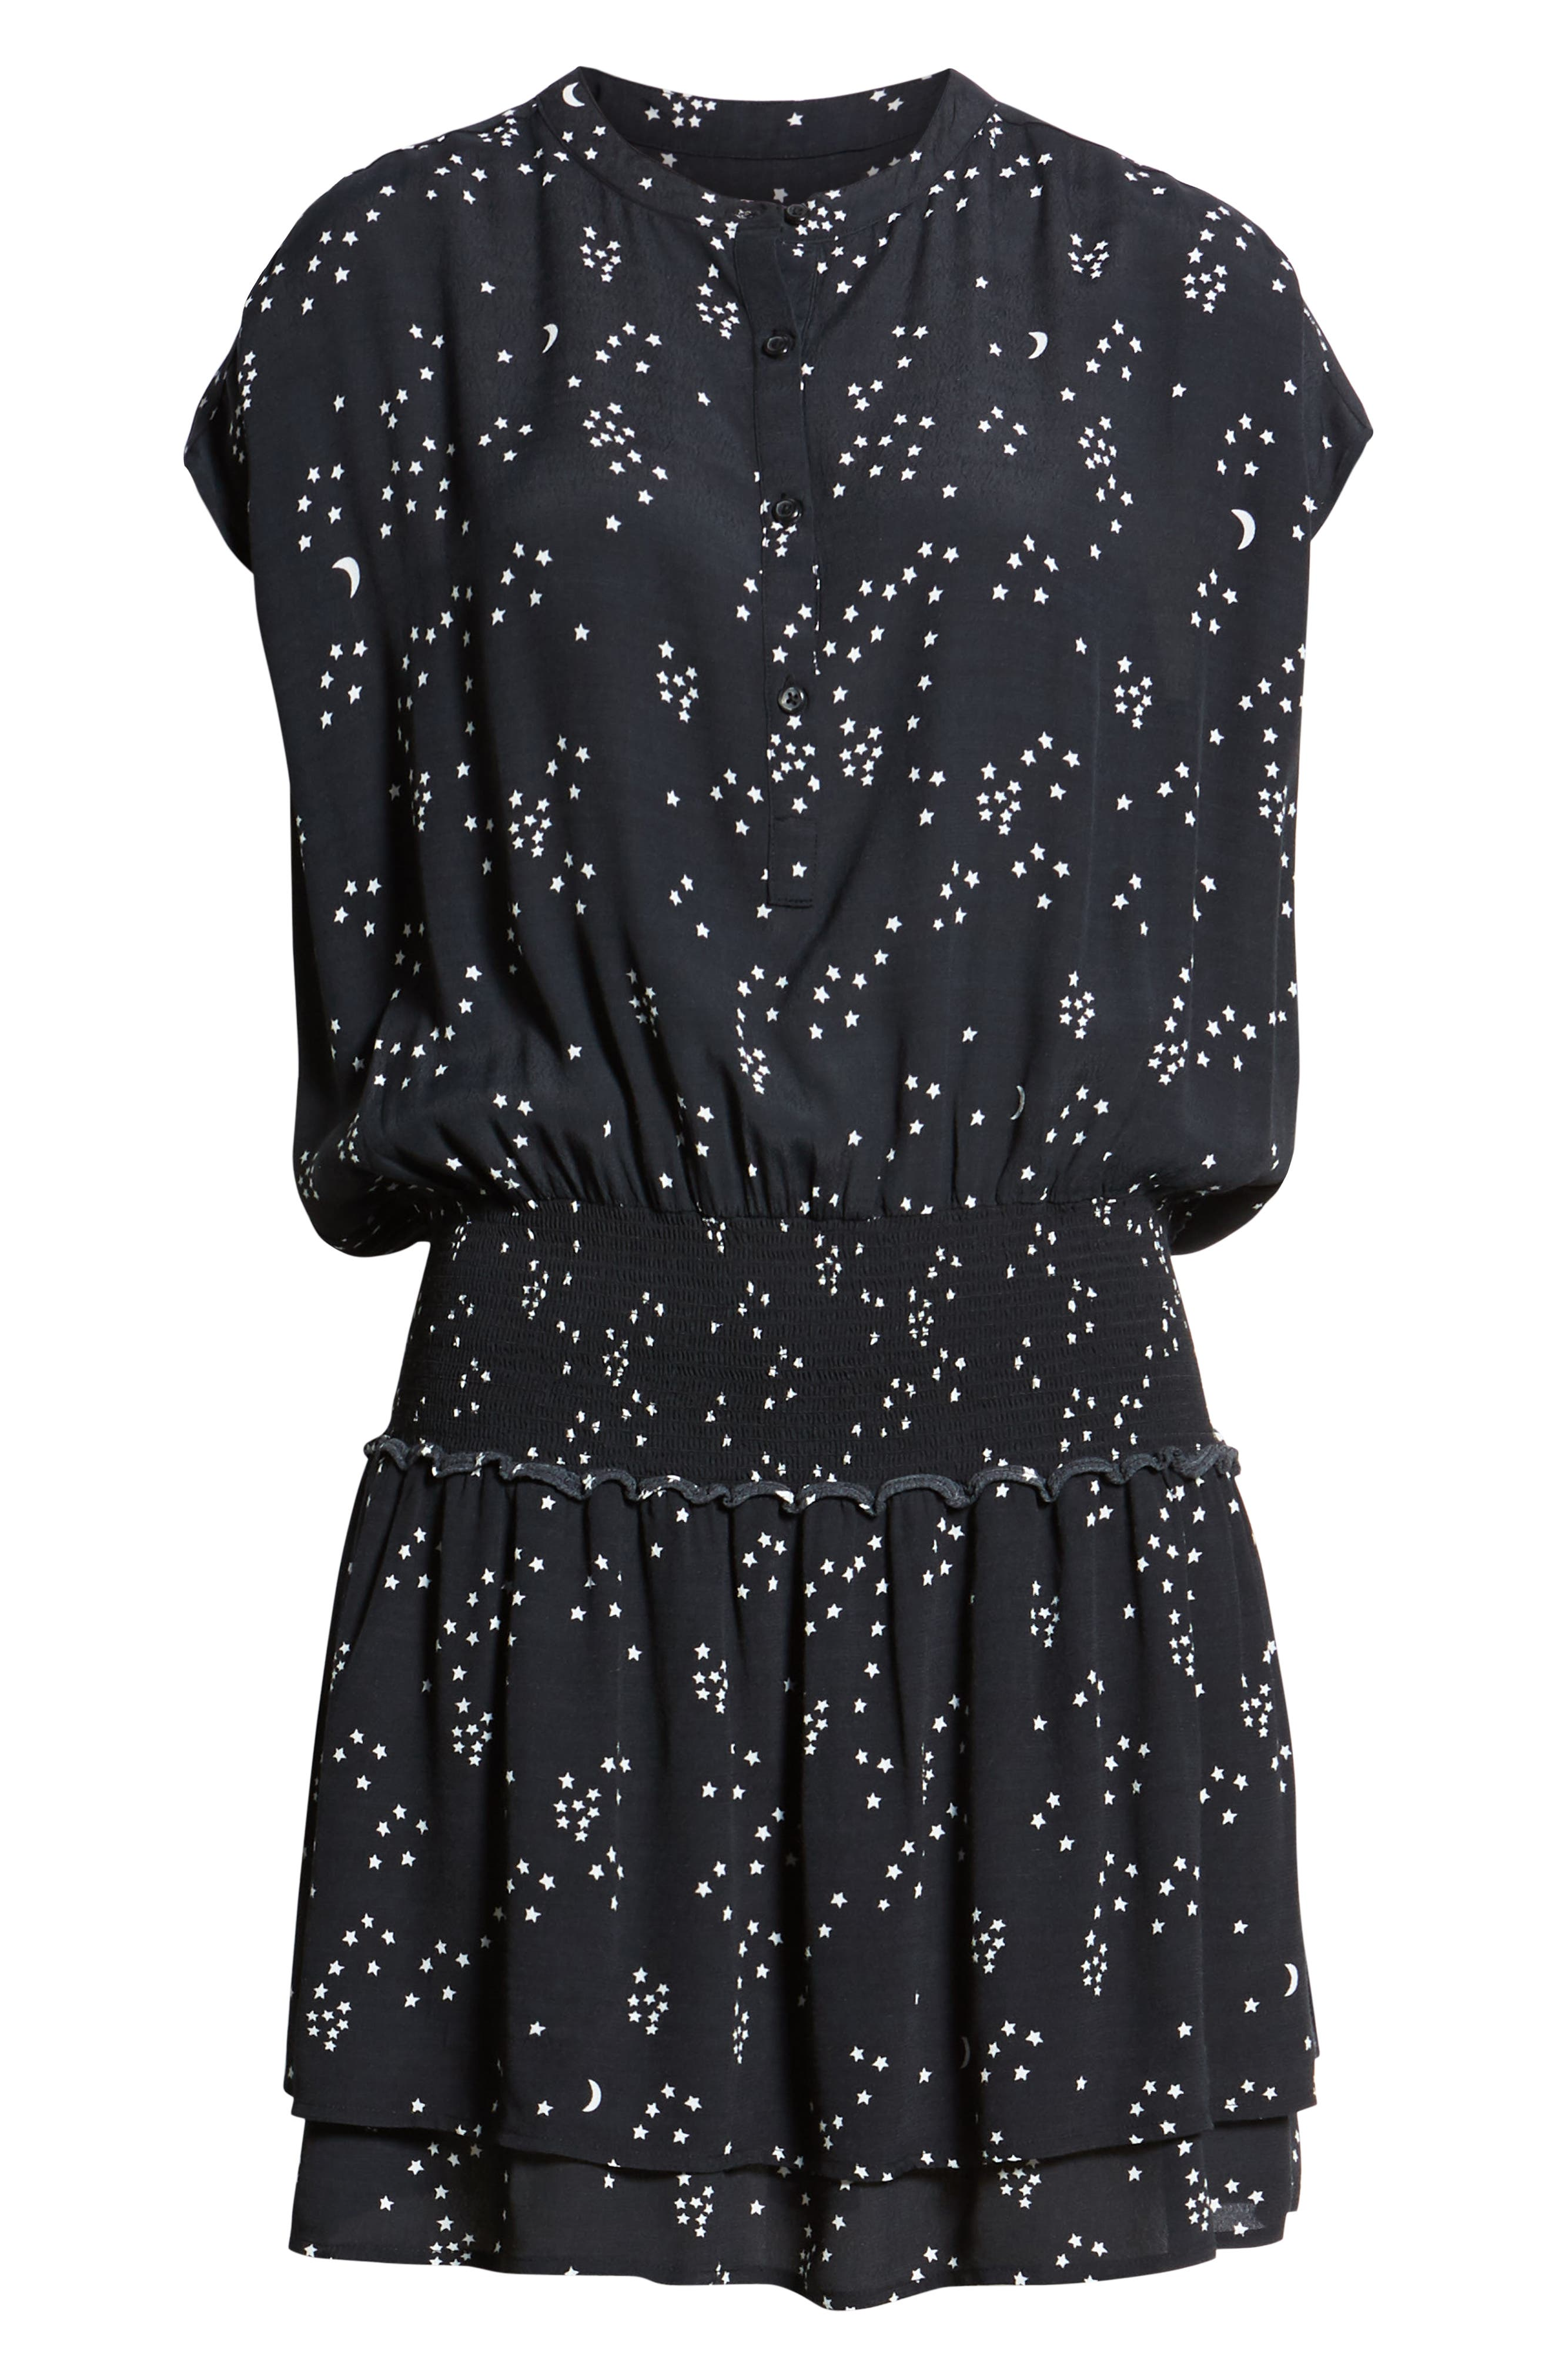 Jolie Moons & Stars Dress,                             Alternate thumbnail 7, color,                             GALAXY